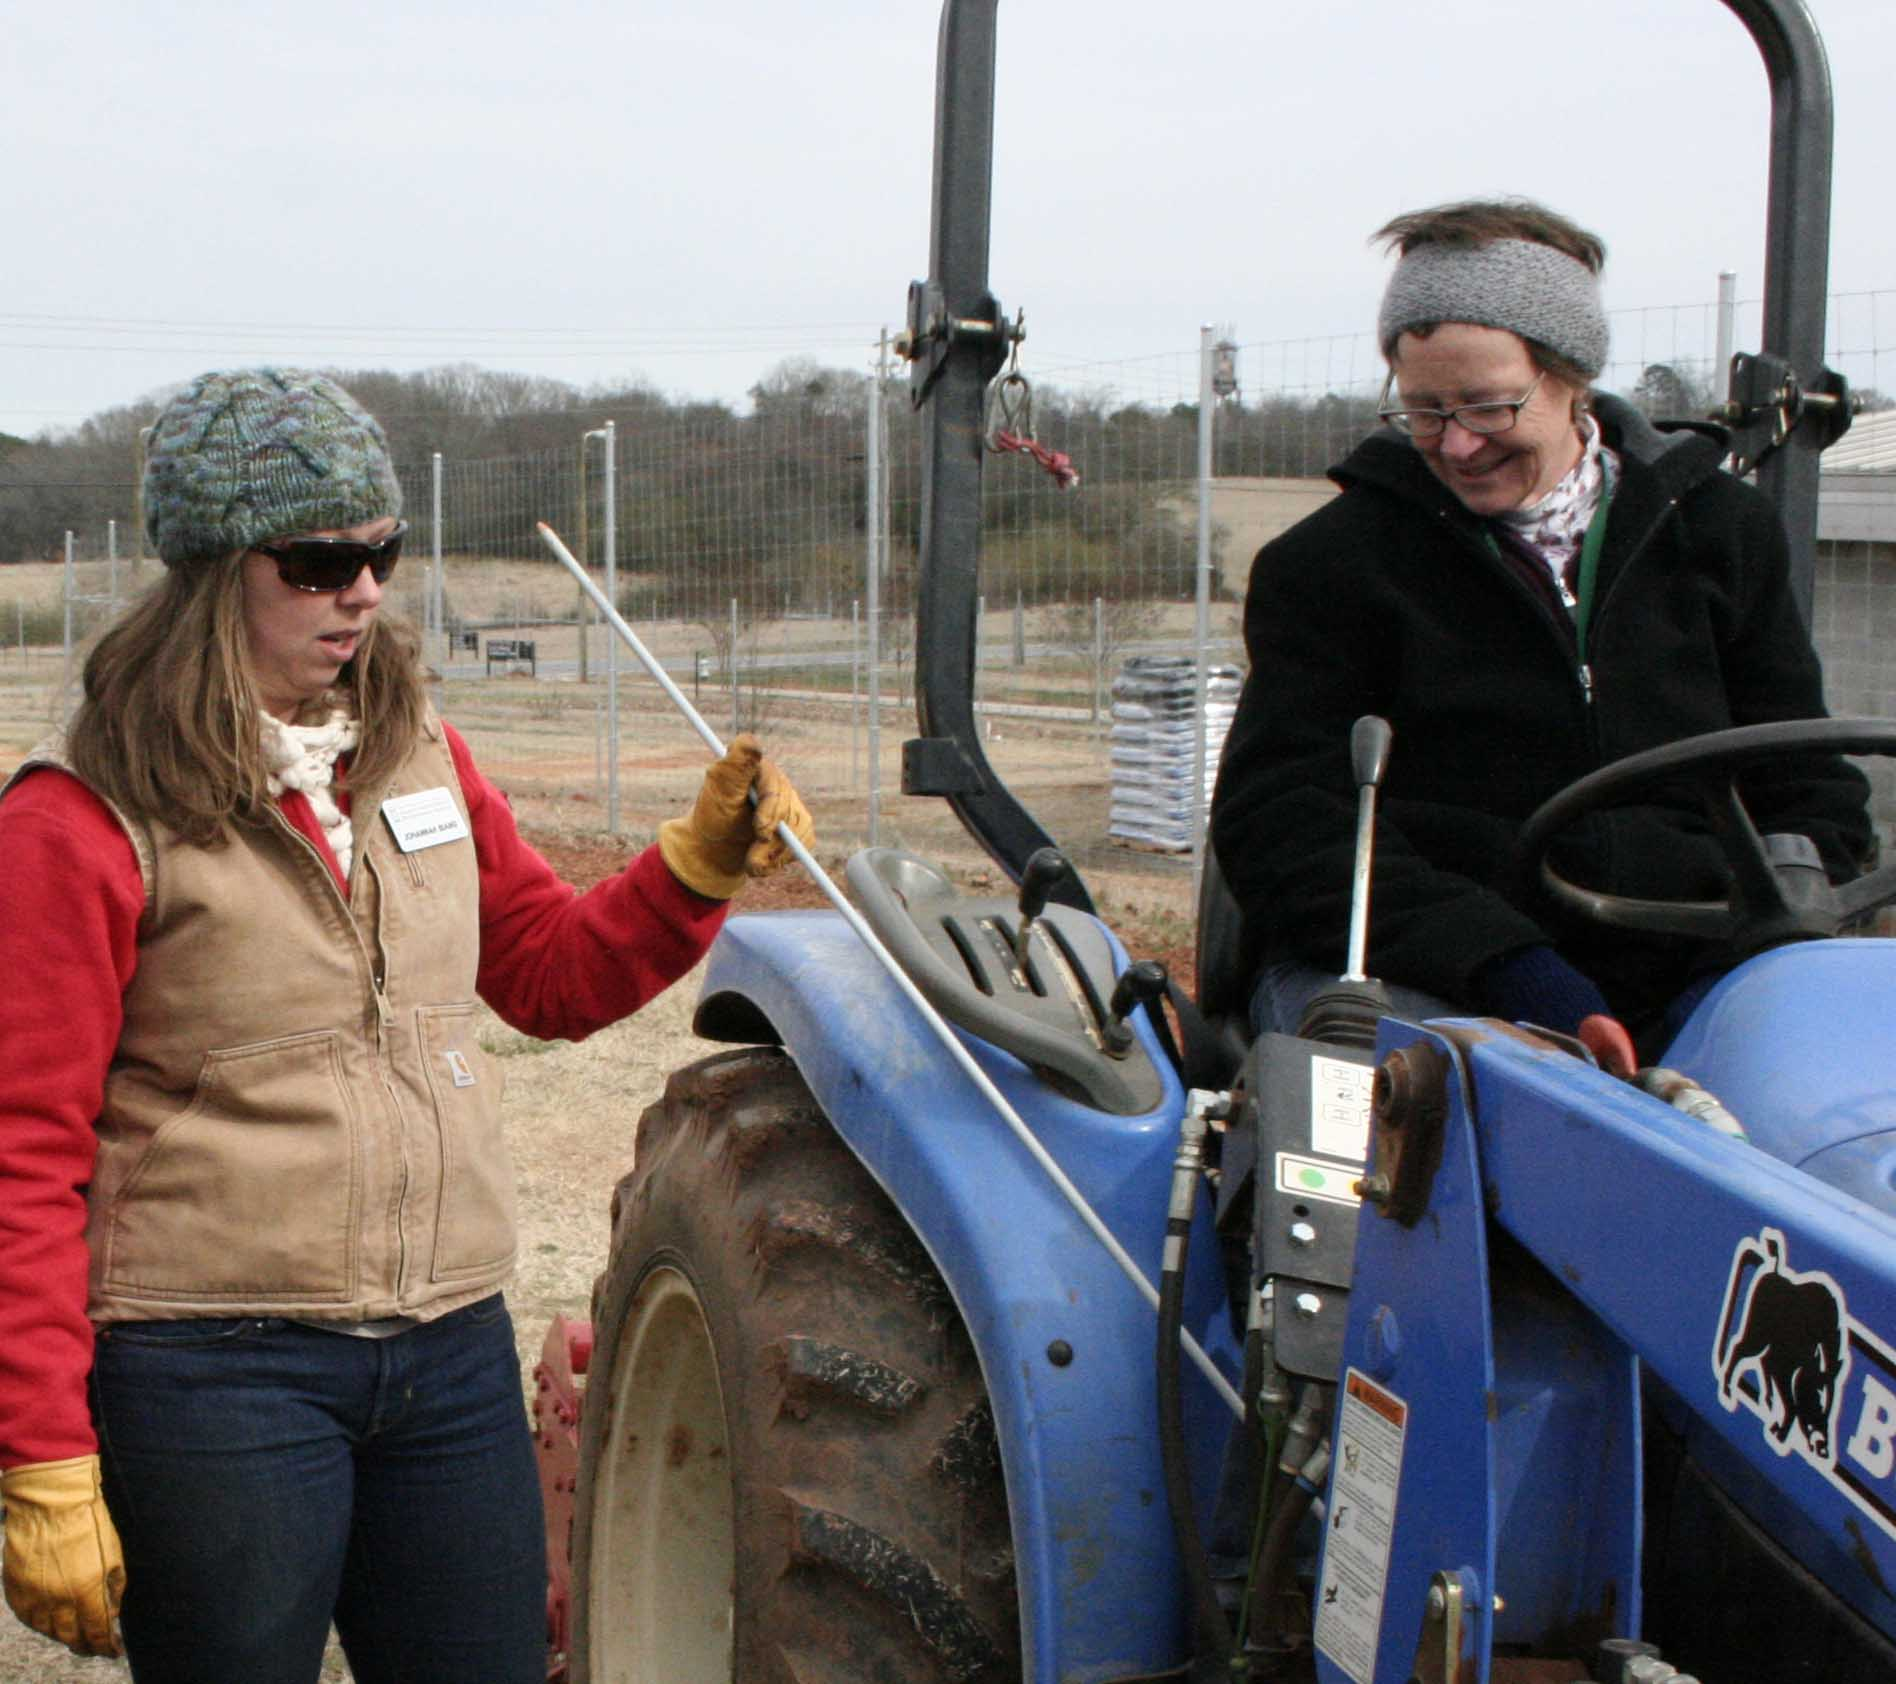 UGArden manager JoHannah Biang teaches Andy Myers, Lipscomb University student of sustainability and environmental agriculture, how to drive a small tractor as part of a workshop at the 2015 Georgia Organics Conference, Feb. 20-21, in Athens.